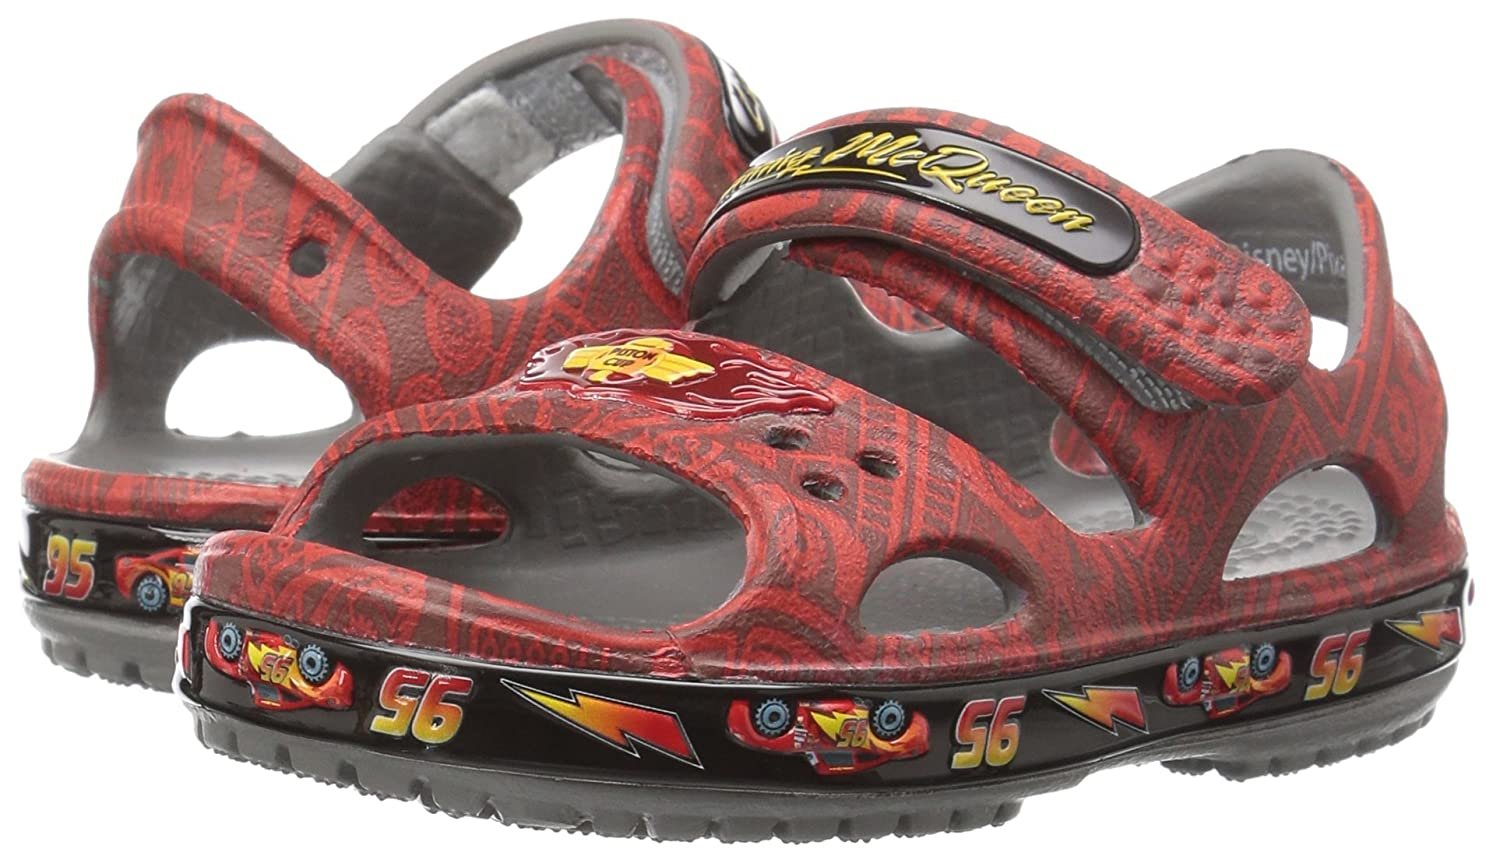 3b42dcabb4a700 crocs Kids  Cars Lightning McQueen Sandal  Buy Online at Low Prices in  India - Amazon.in